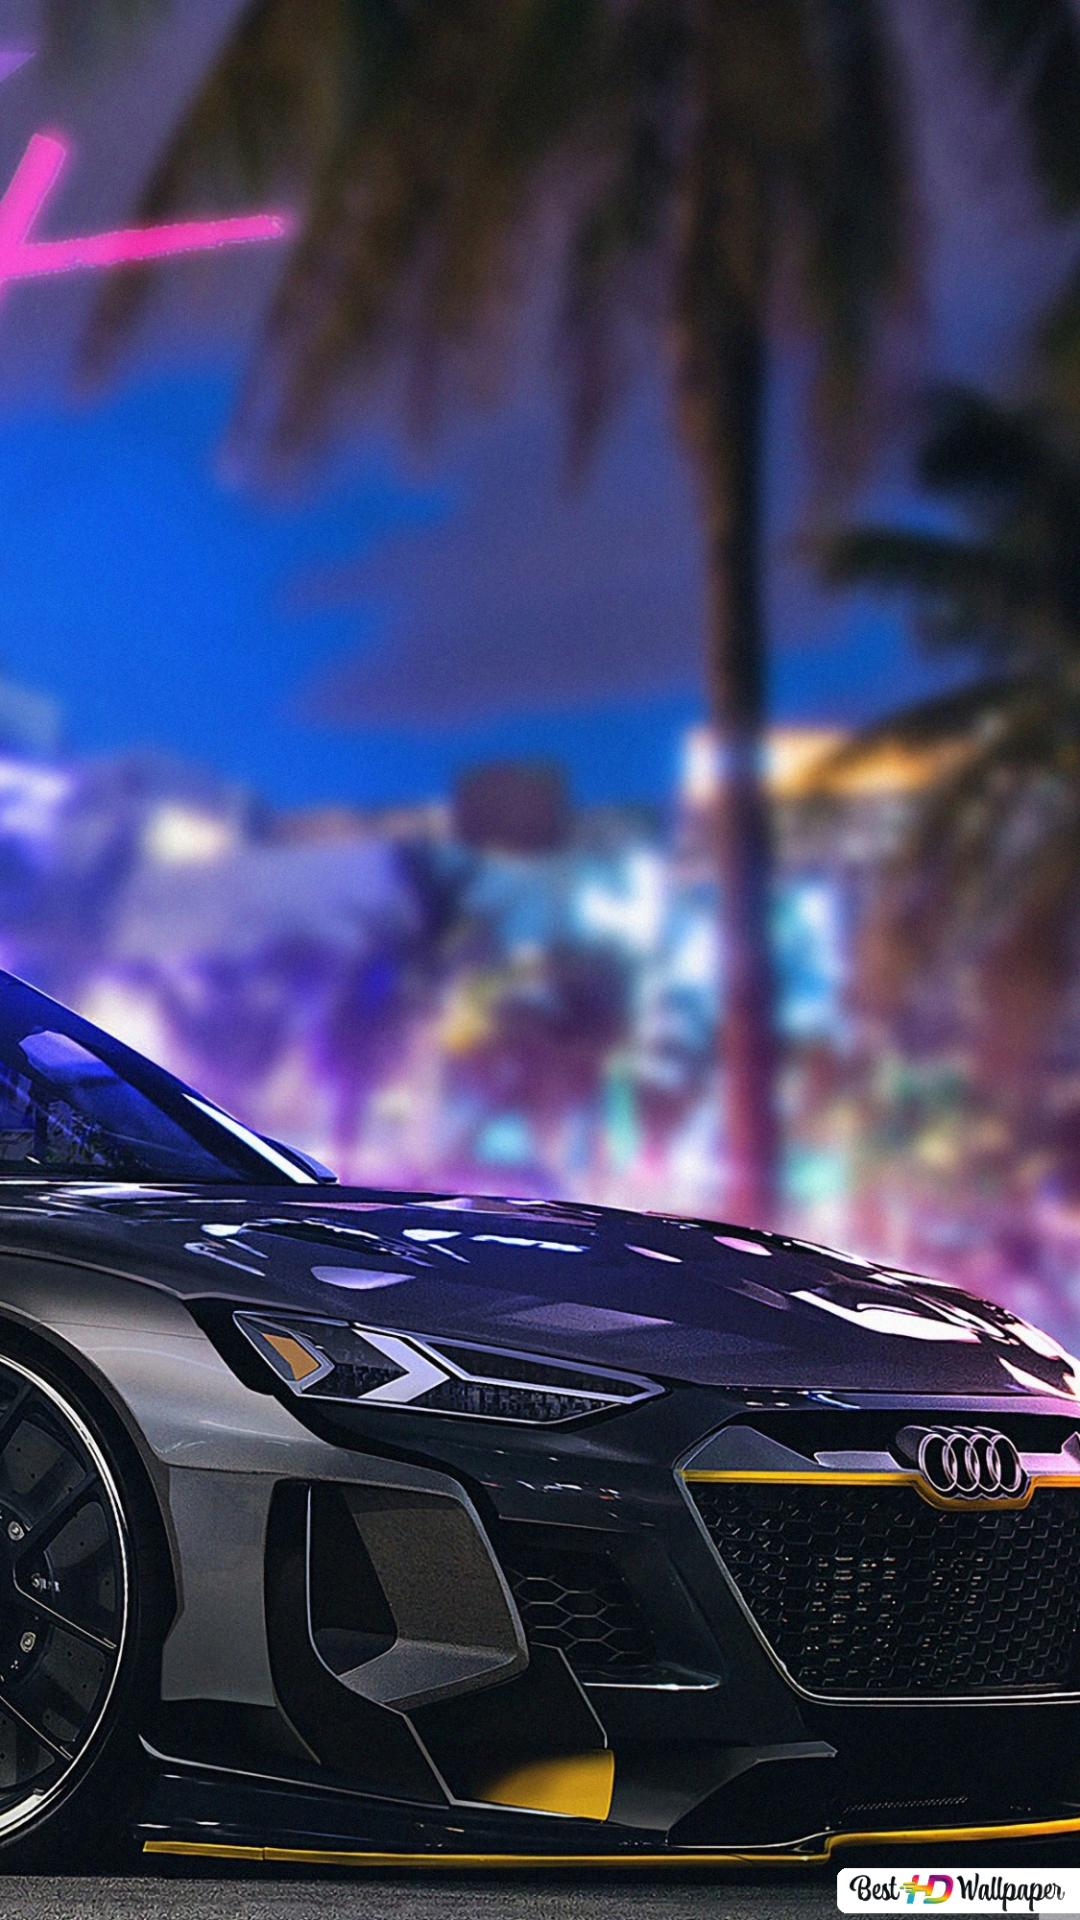 Modified Audi Need For Speed Heat Video Game Ultrahd Hd Wallpaper Download